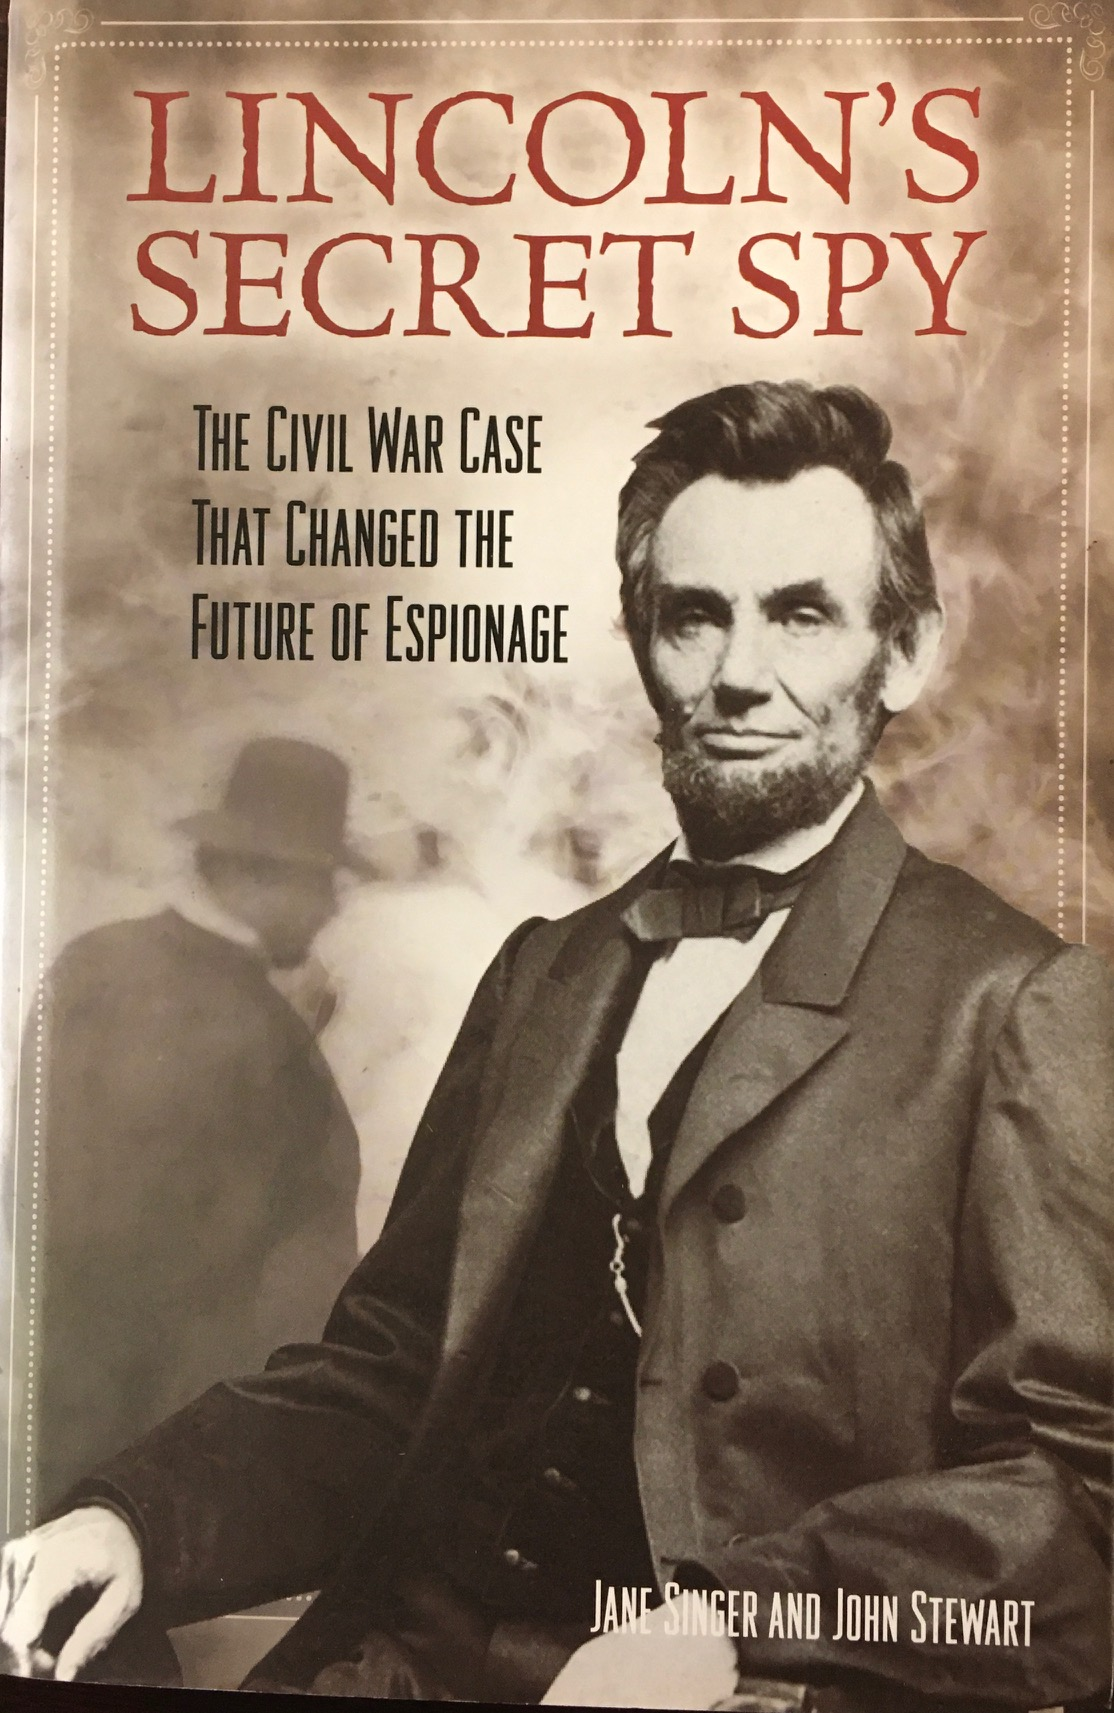 Image for Lincoln's Secret Spy: The Civil War Case That Changed the Future of Espionage